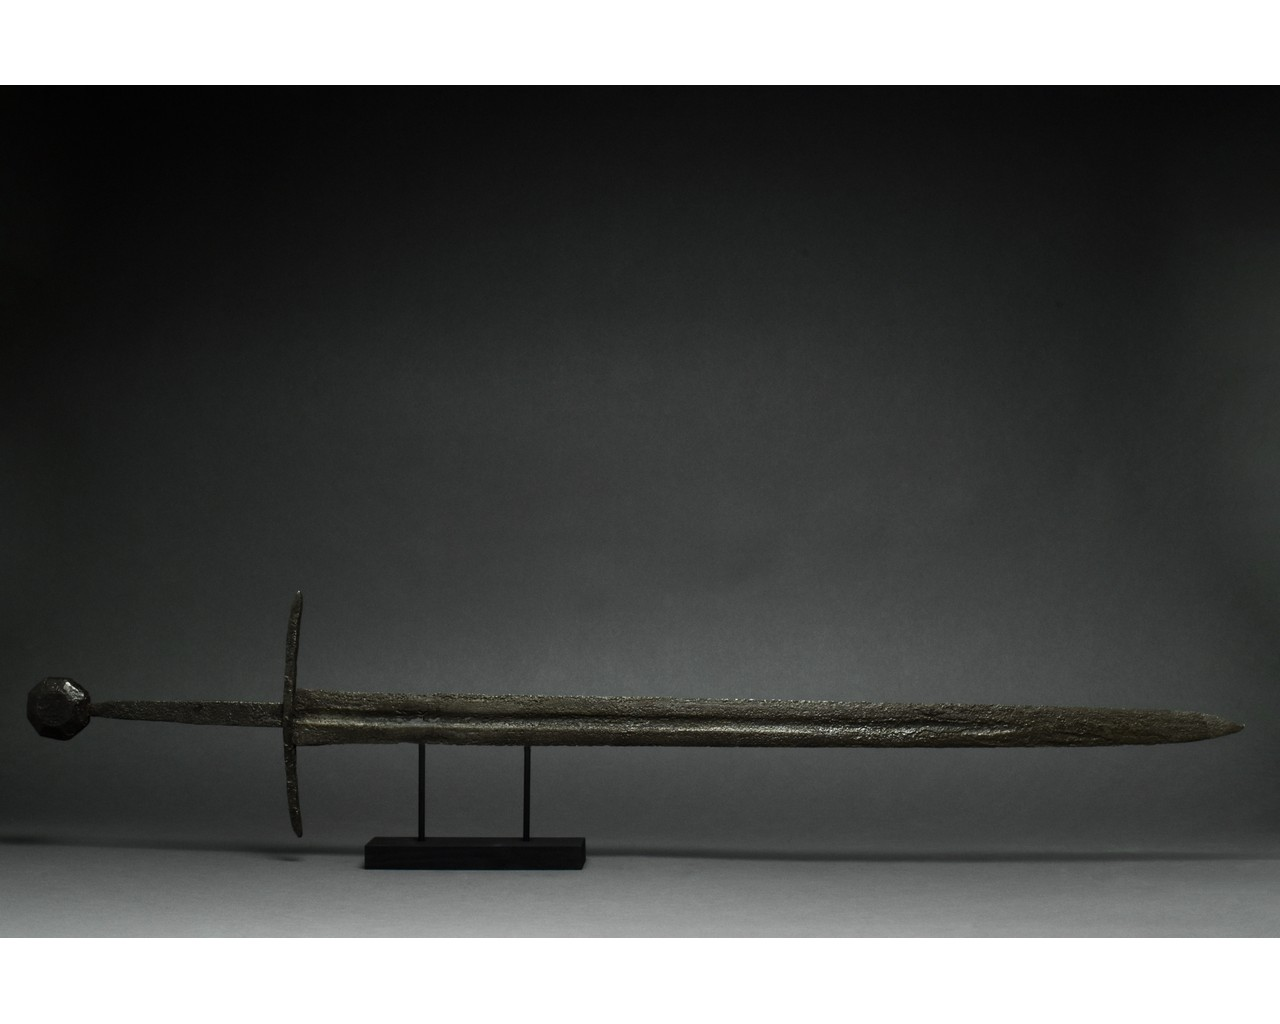 MEDIEVAL IRON SWORD WITH HANDLE - Image 2 of 5